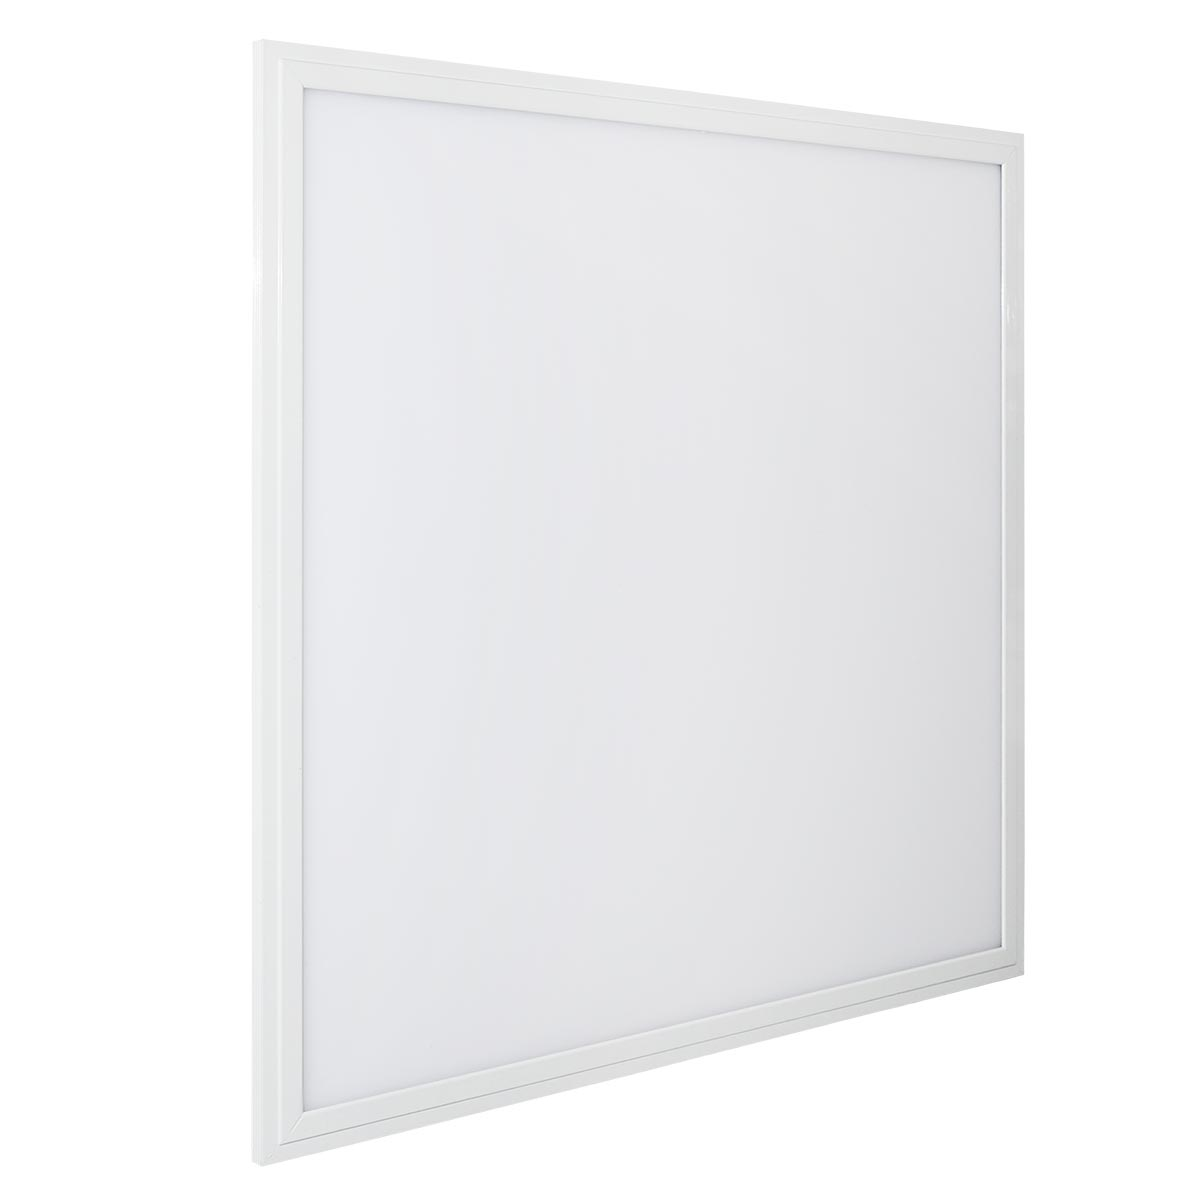 LED Light Panel 620x620 Weiss 40W 5000K 4'800lm IP20